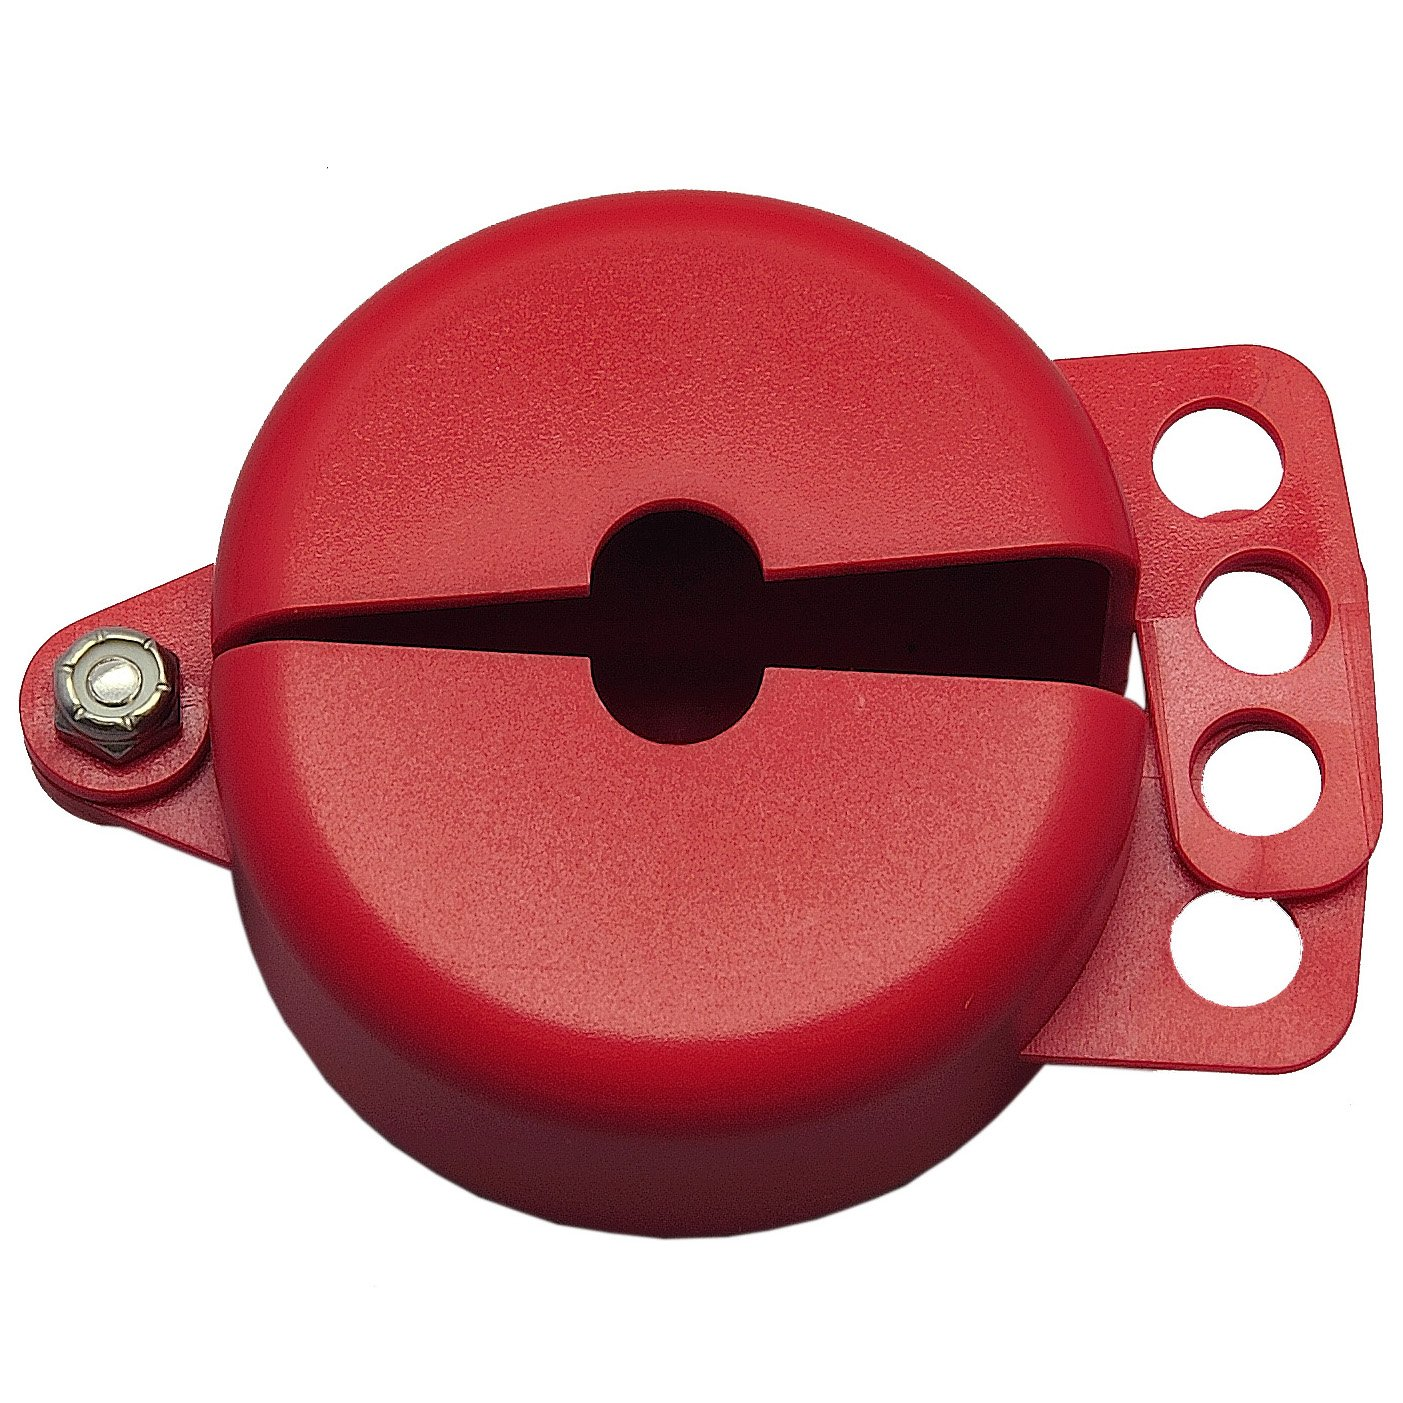 ZING 7103 RecycLockout Gate Valve Lockout, 1 Inch - 2.5 Inch, Recycled Plastic